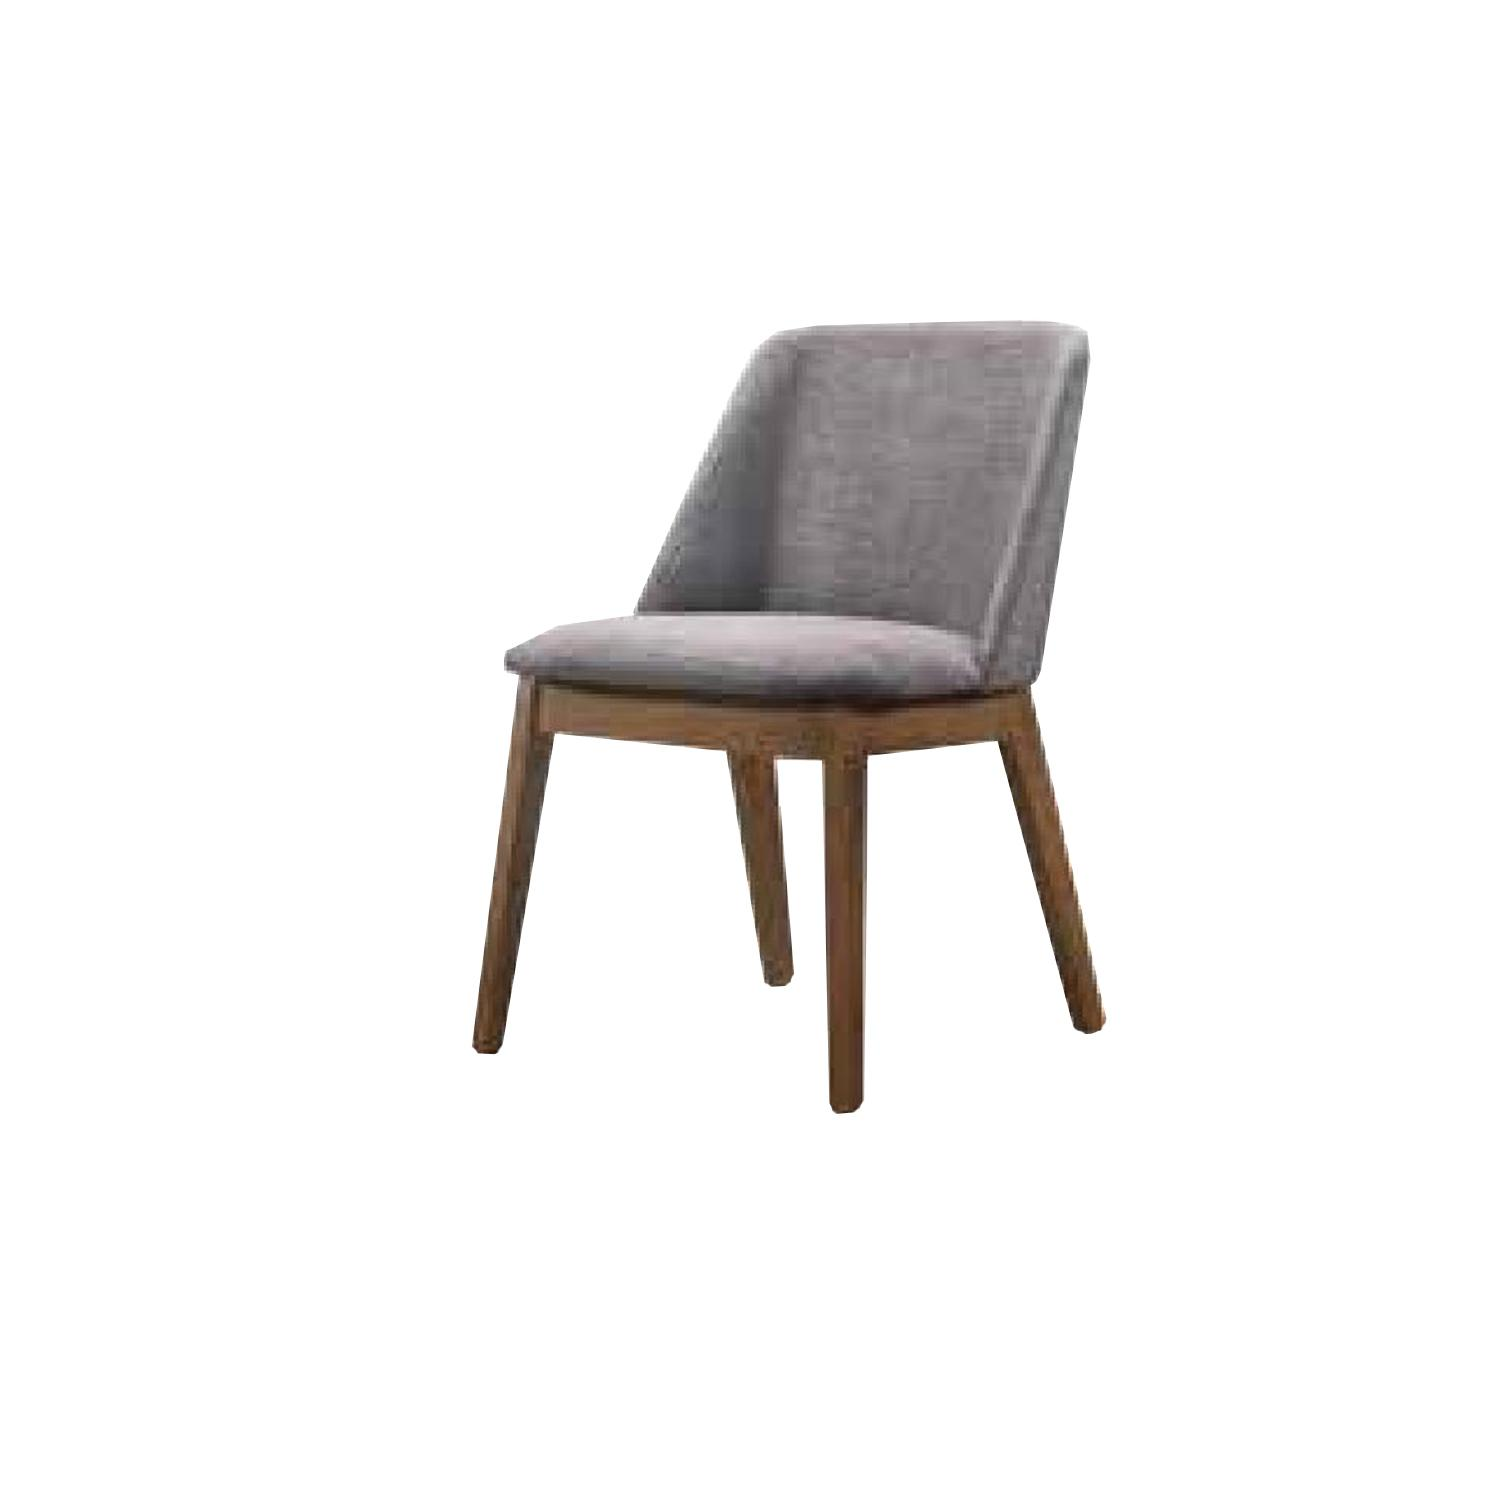 LIVING MALL_Beasly 1 Dining Chair_FREE DELIVERY